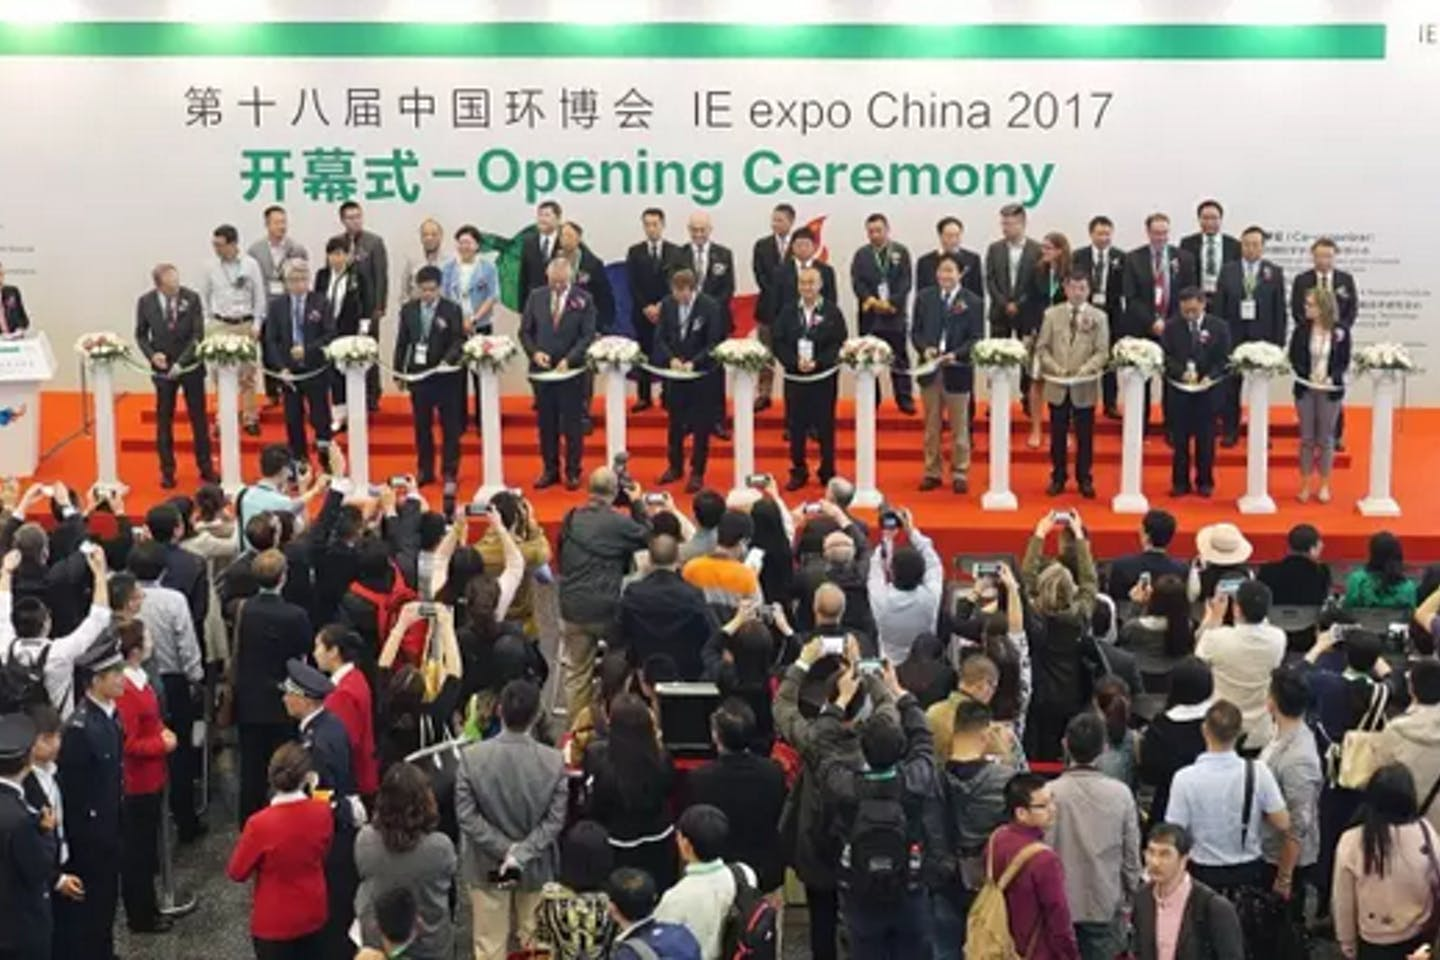 IE expo China 2018: Highlights of Asia's leading trade show for environmental technology solutions